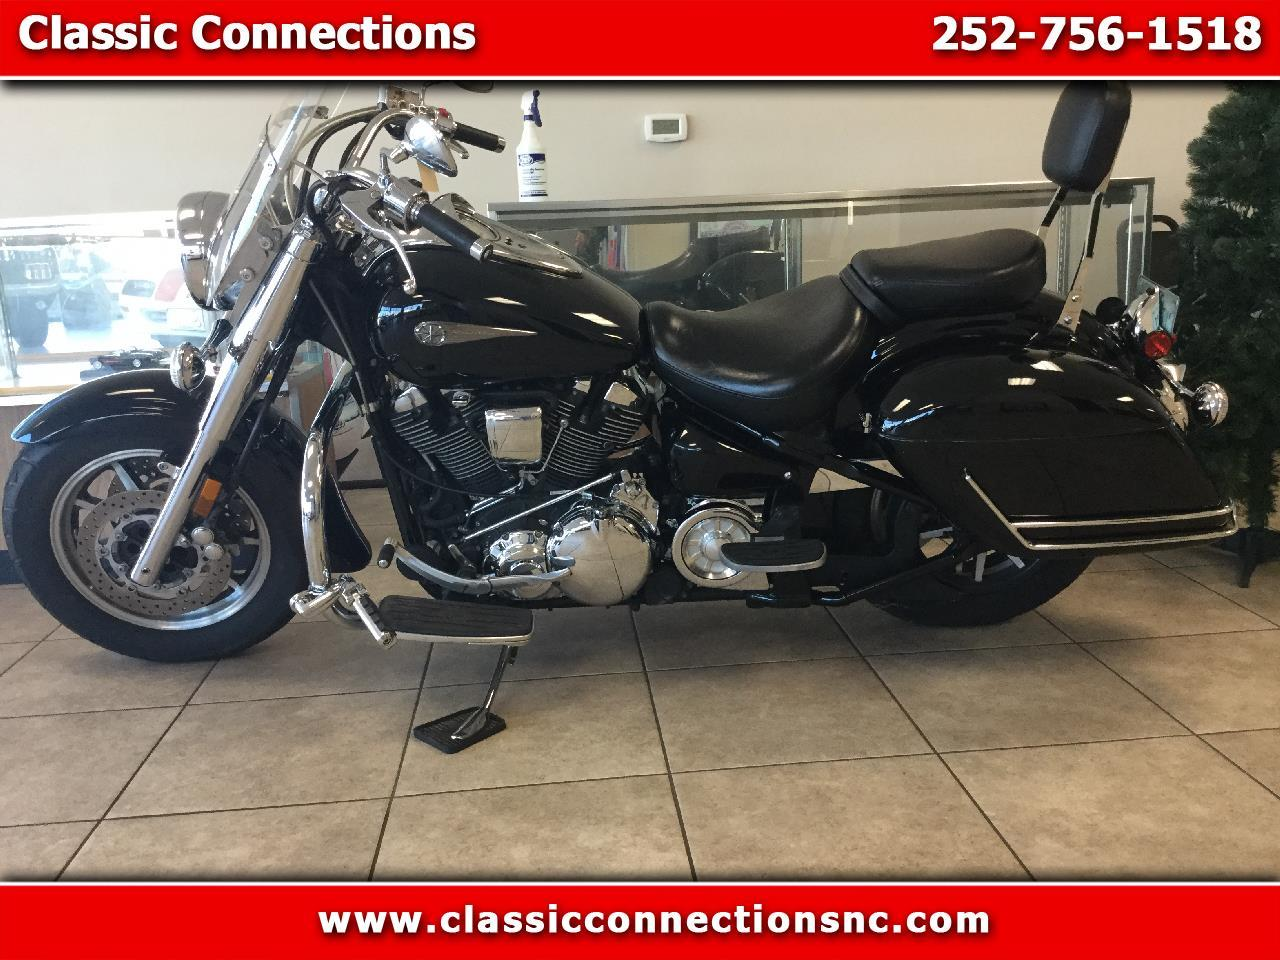 2007 Yamaha Motorcycle for sale in Greenville, NC